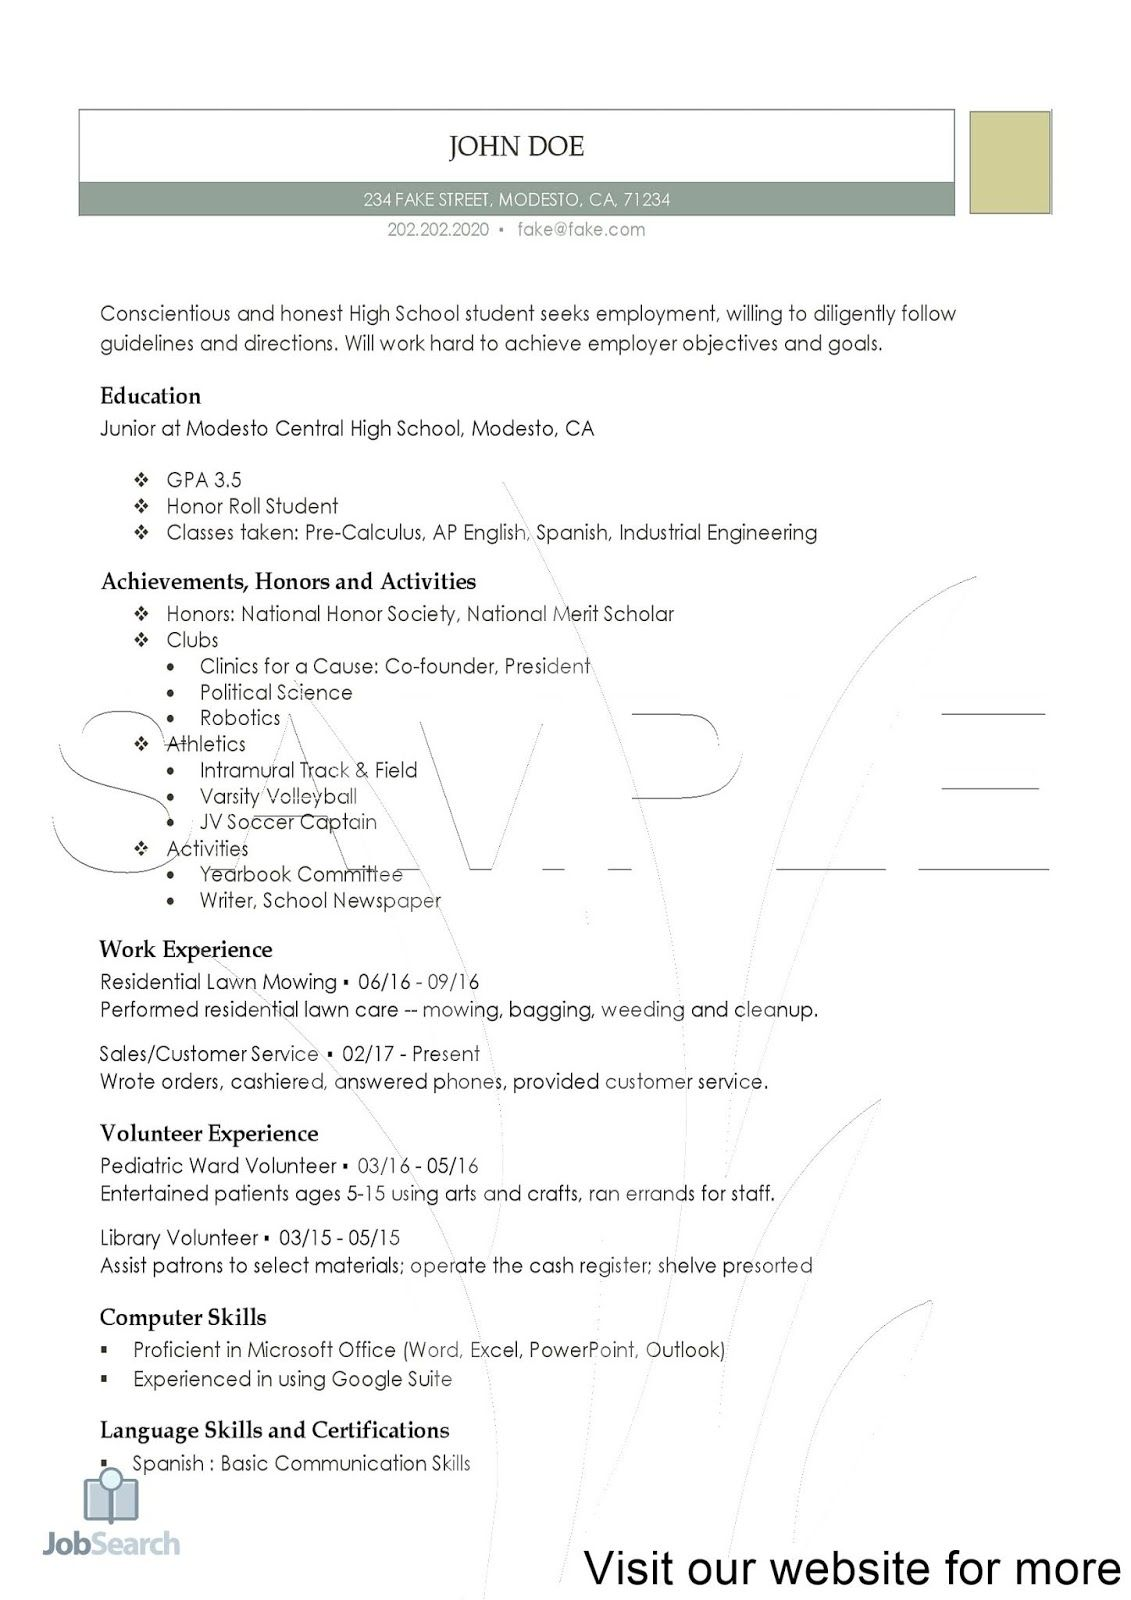 resume writing tips templates in high school students college template powerpoint health Resume Resume Writing Powerpoint High School